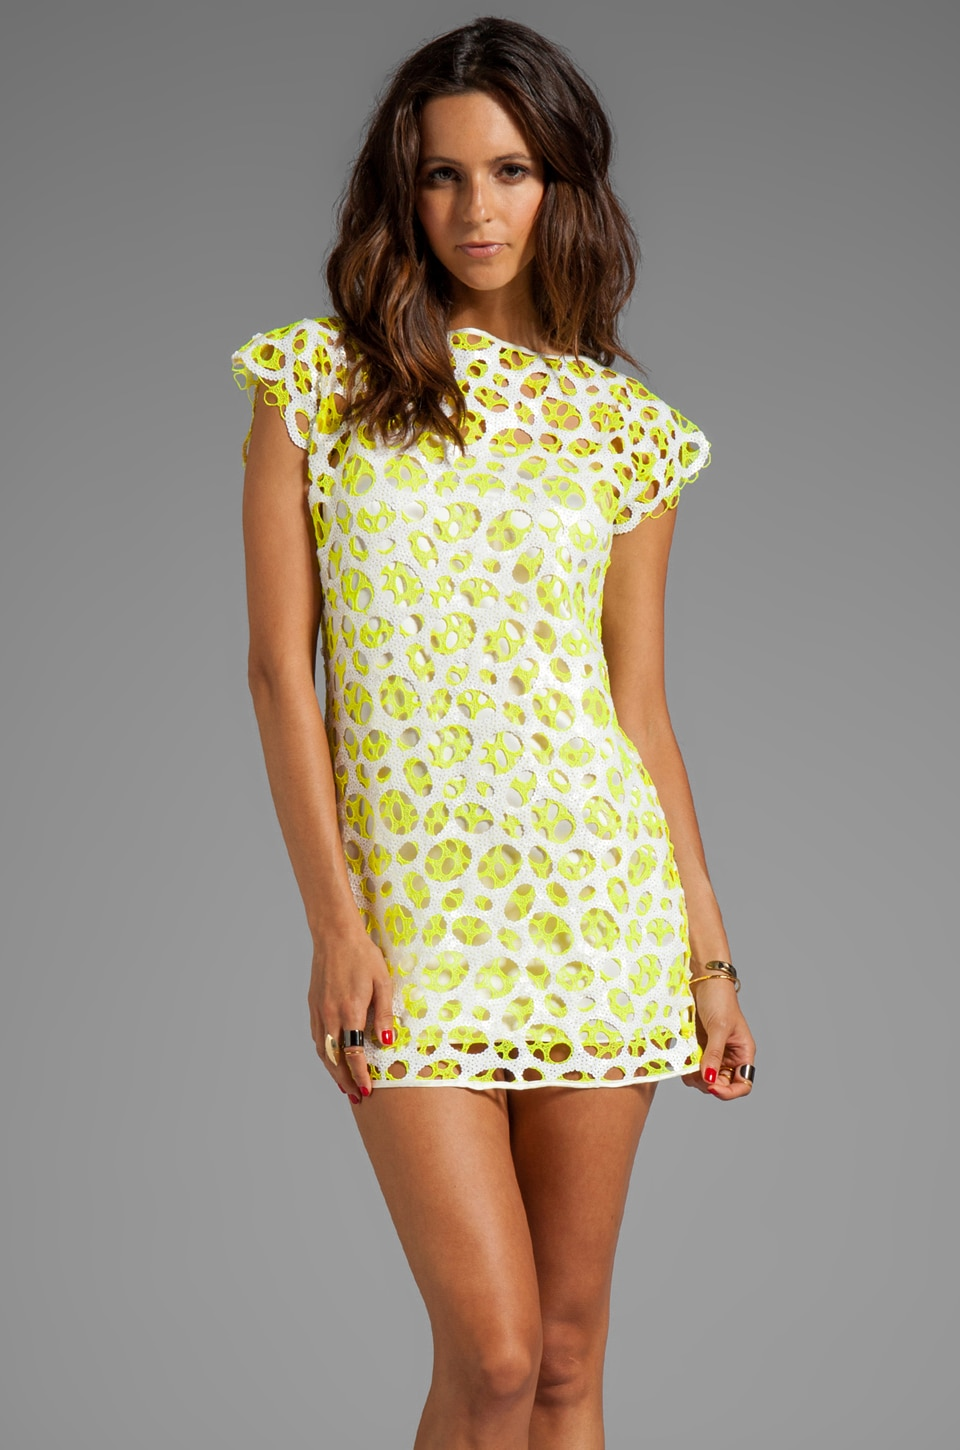 AGAIN Muffie Sequin Dress with Silk Slip in Vain Yellow